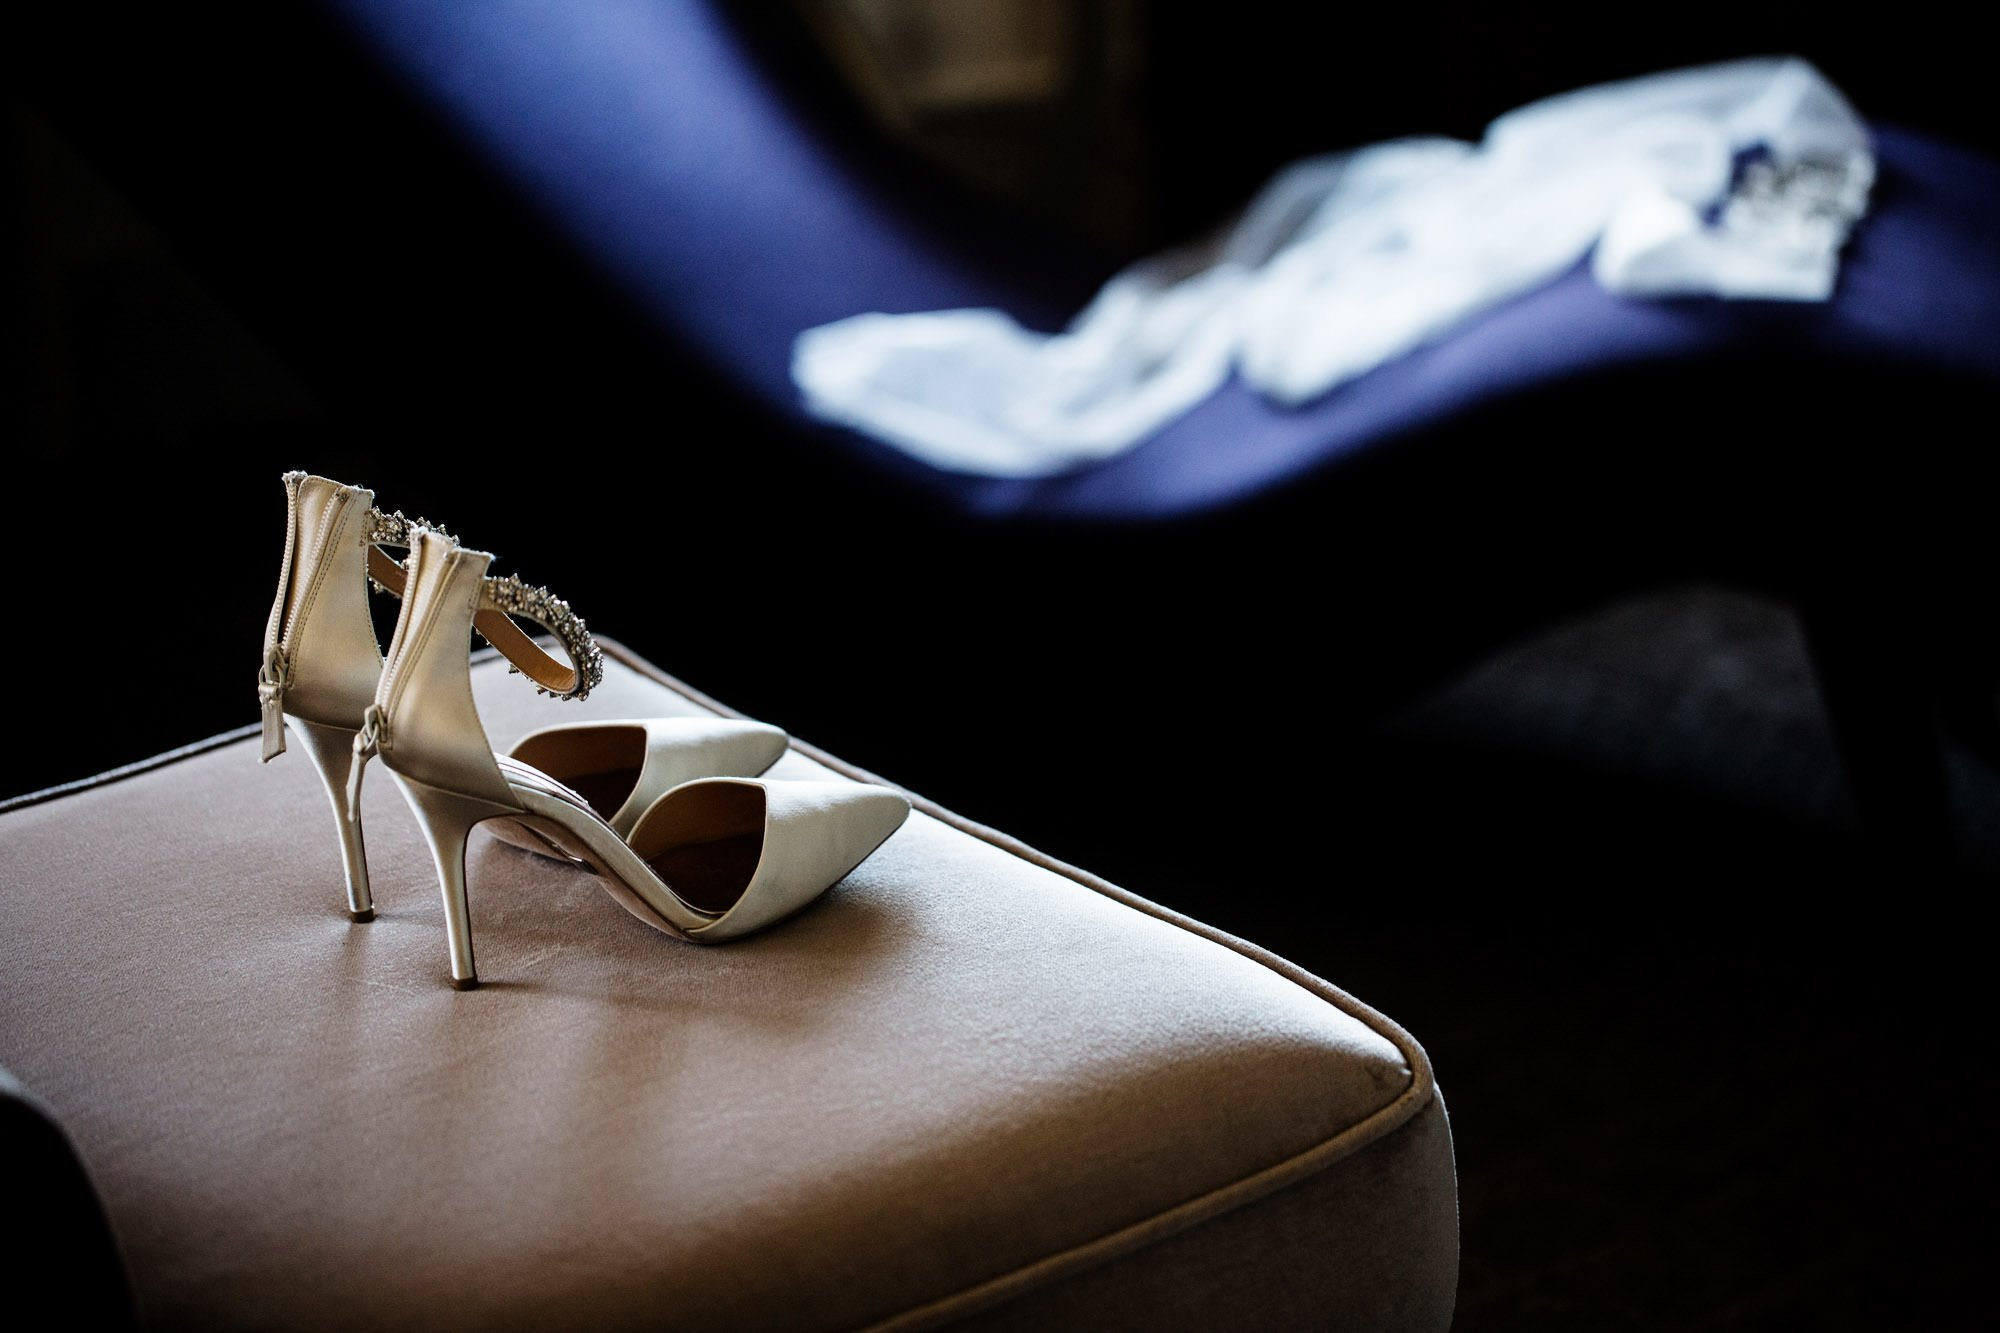 A detail of the bride's shoes.